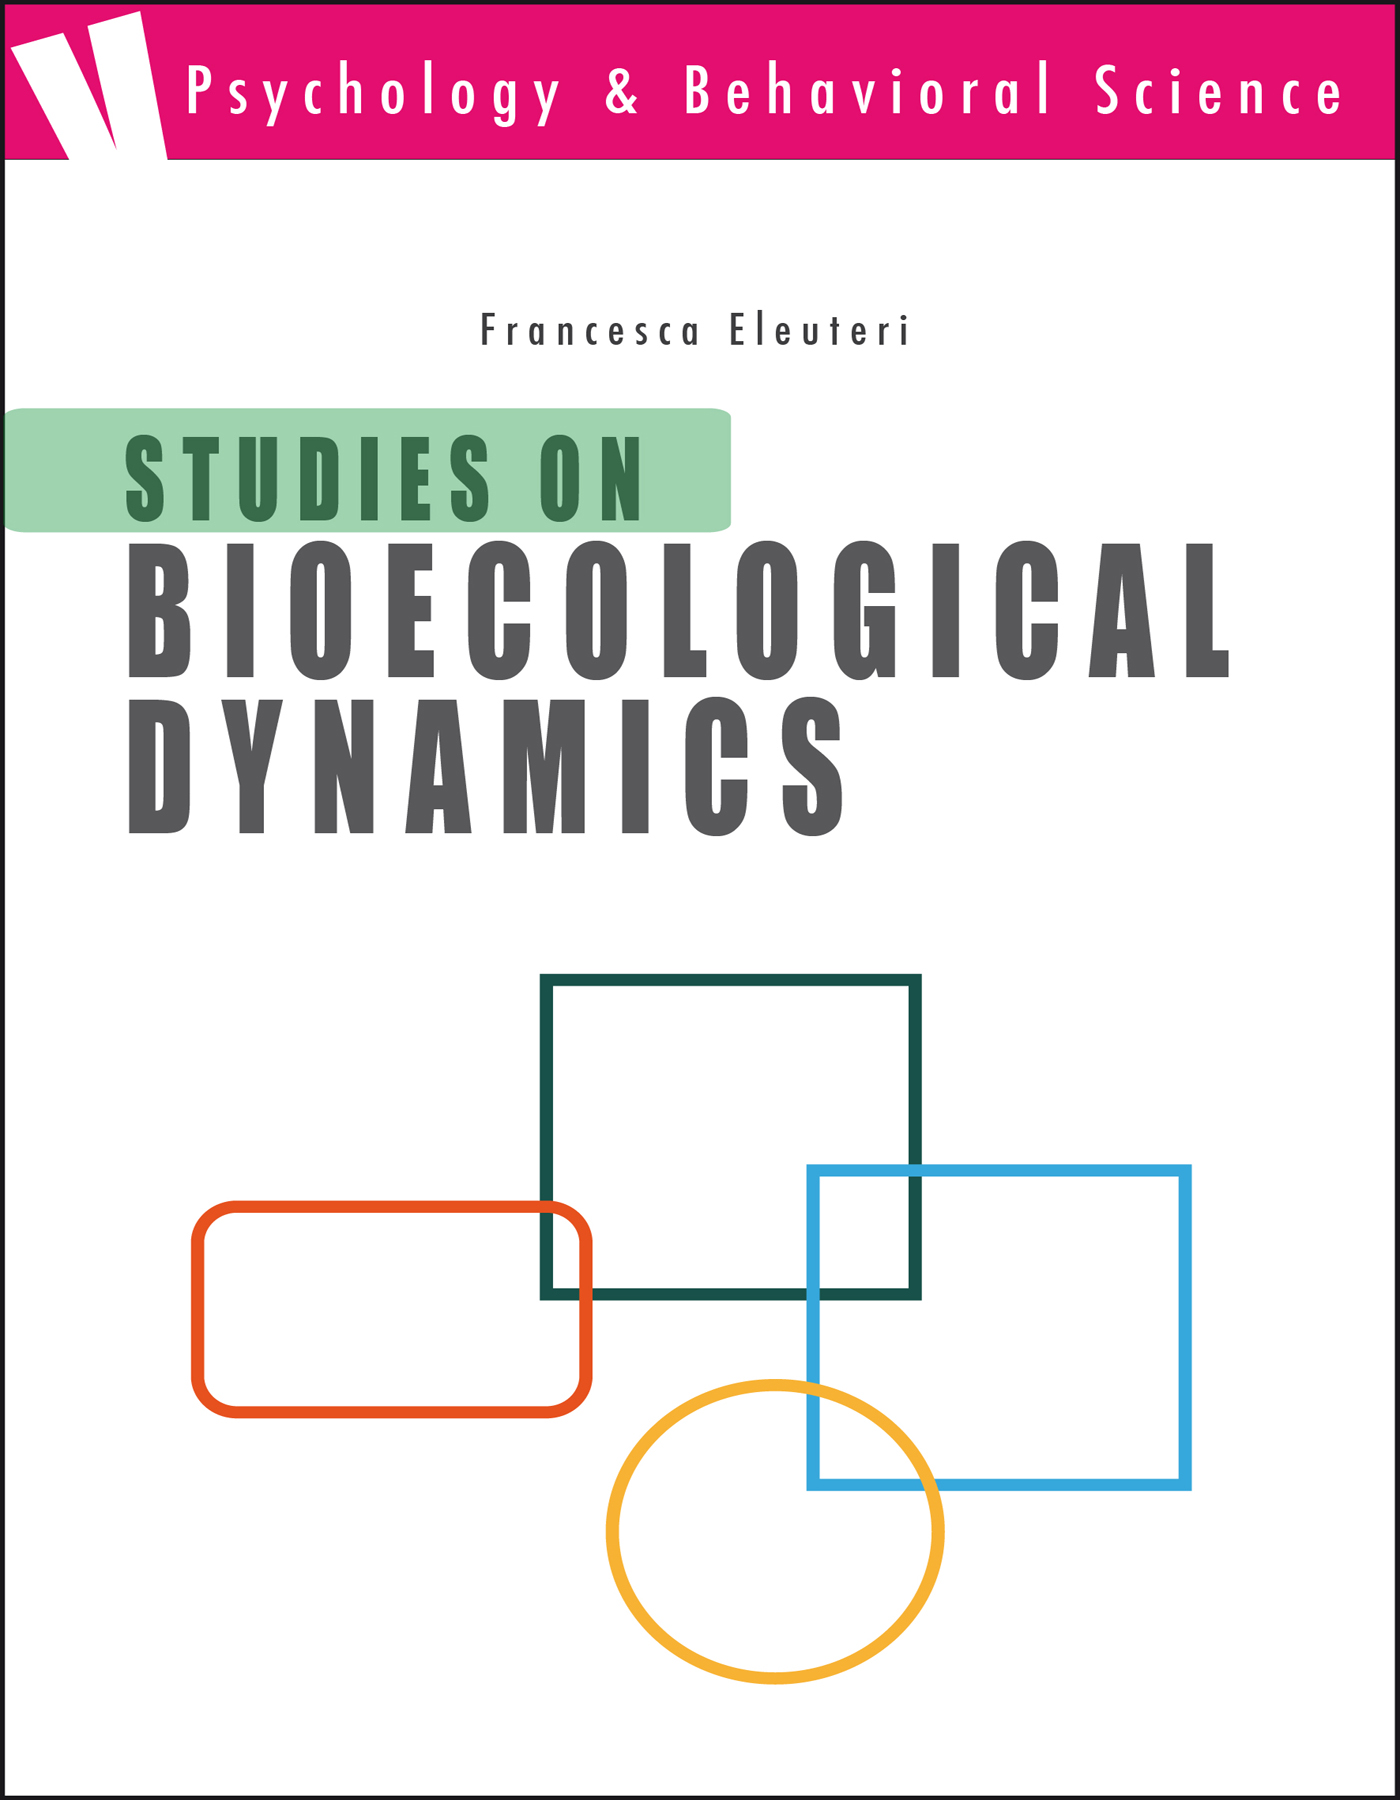 Studies on Bioecological Dynamics